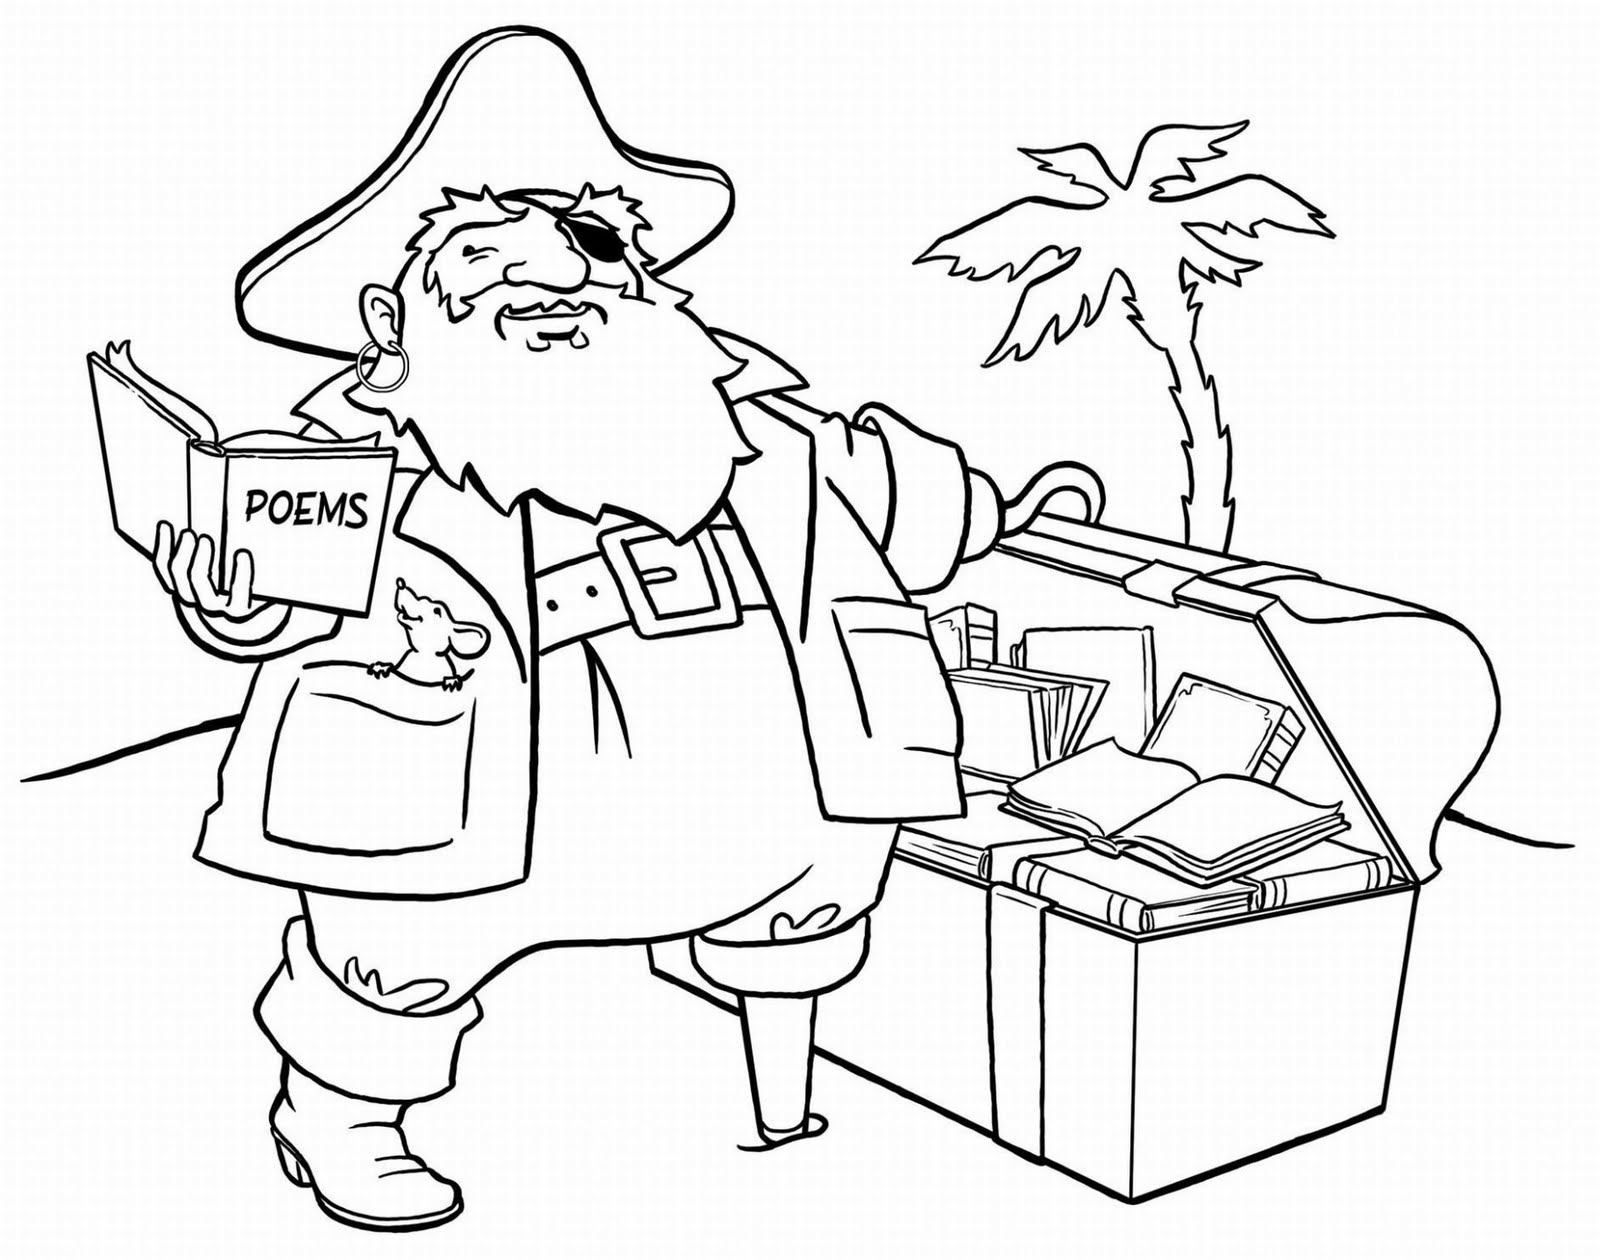 pirate coloring pages pirate colouring pages for kids in the playroom coloring pages pirate